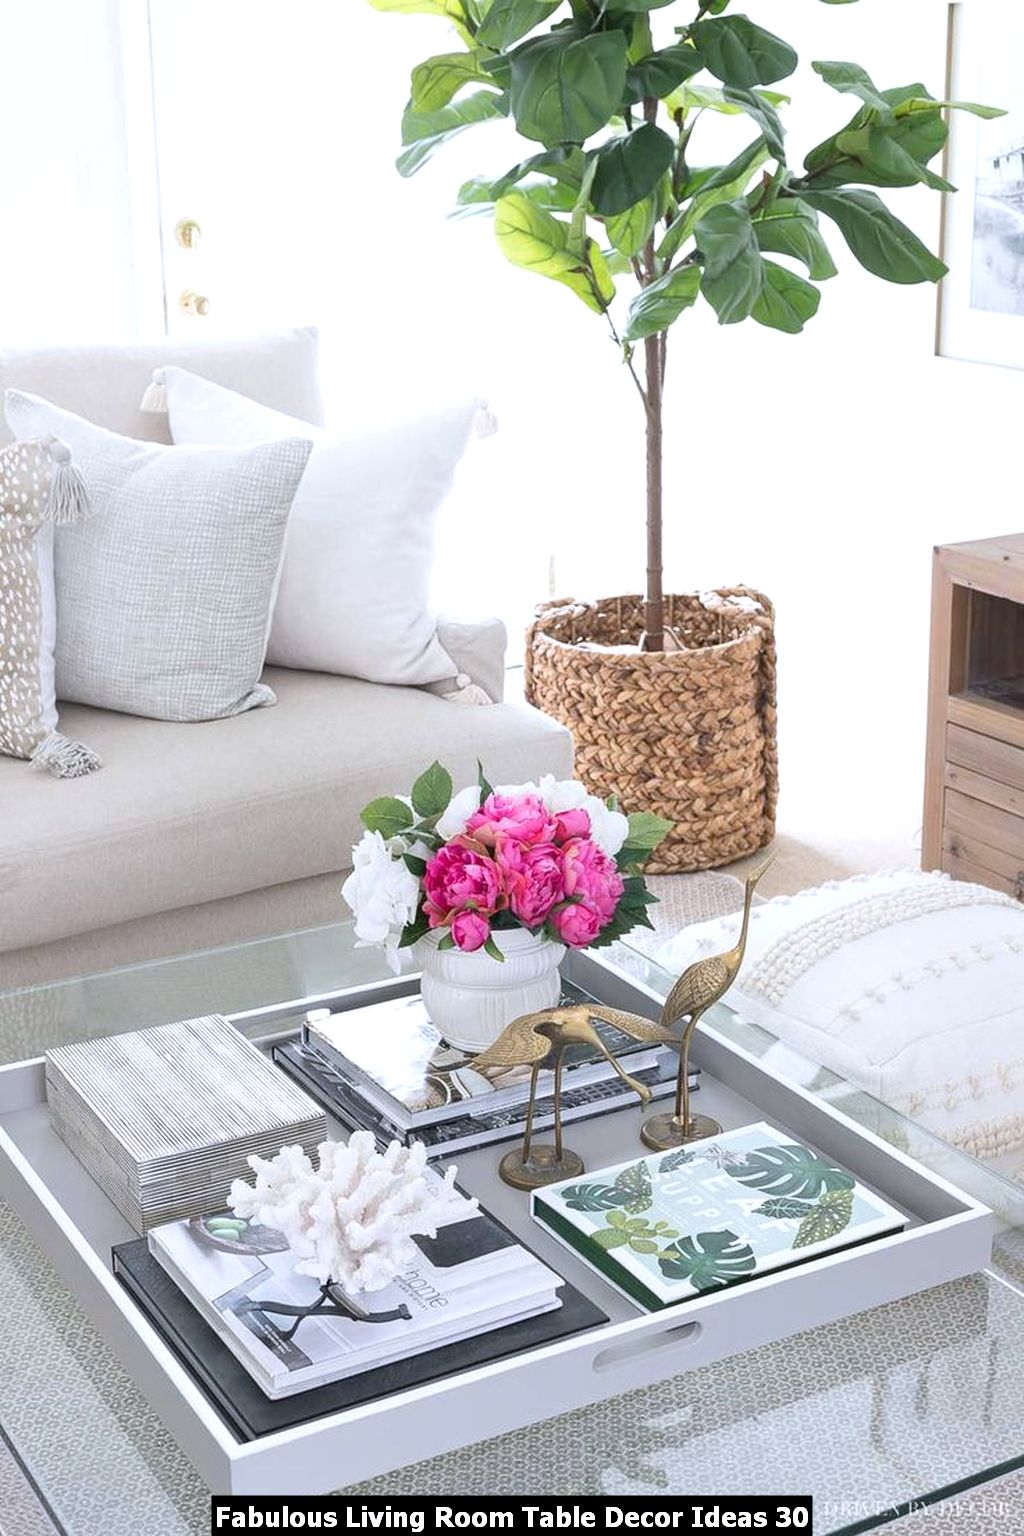 Fabulous Living Room Table Decor Ideas 30